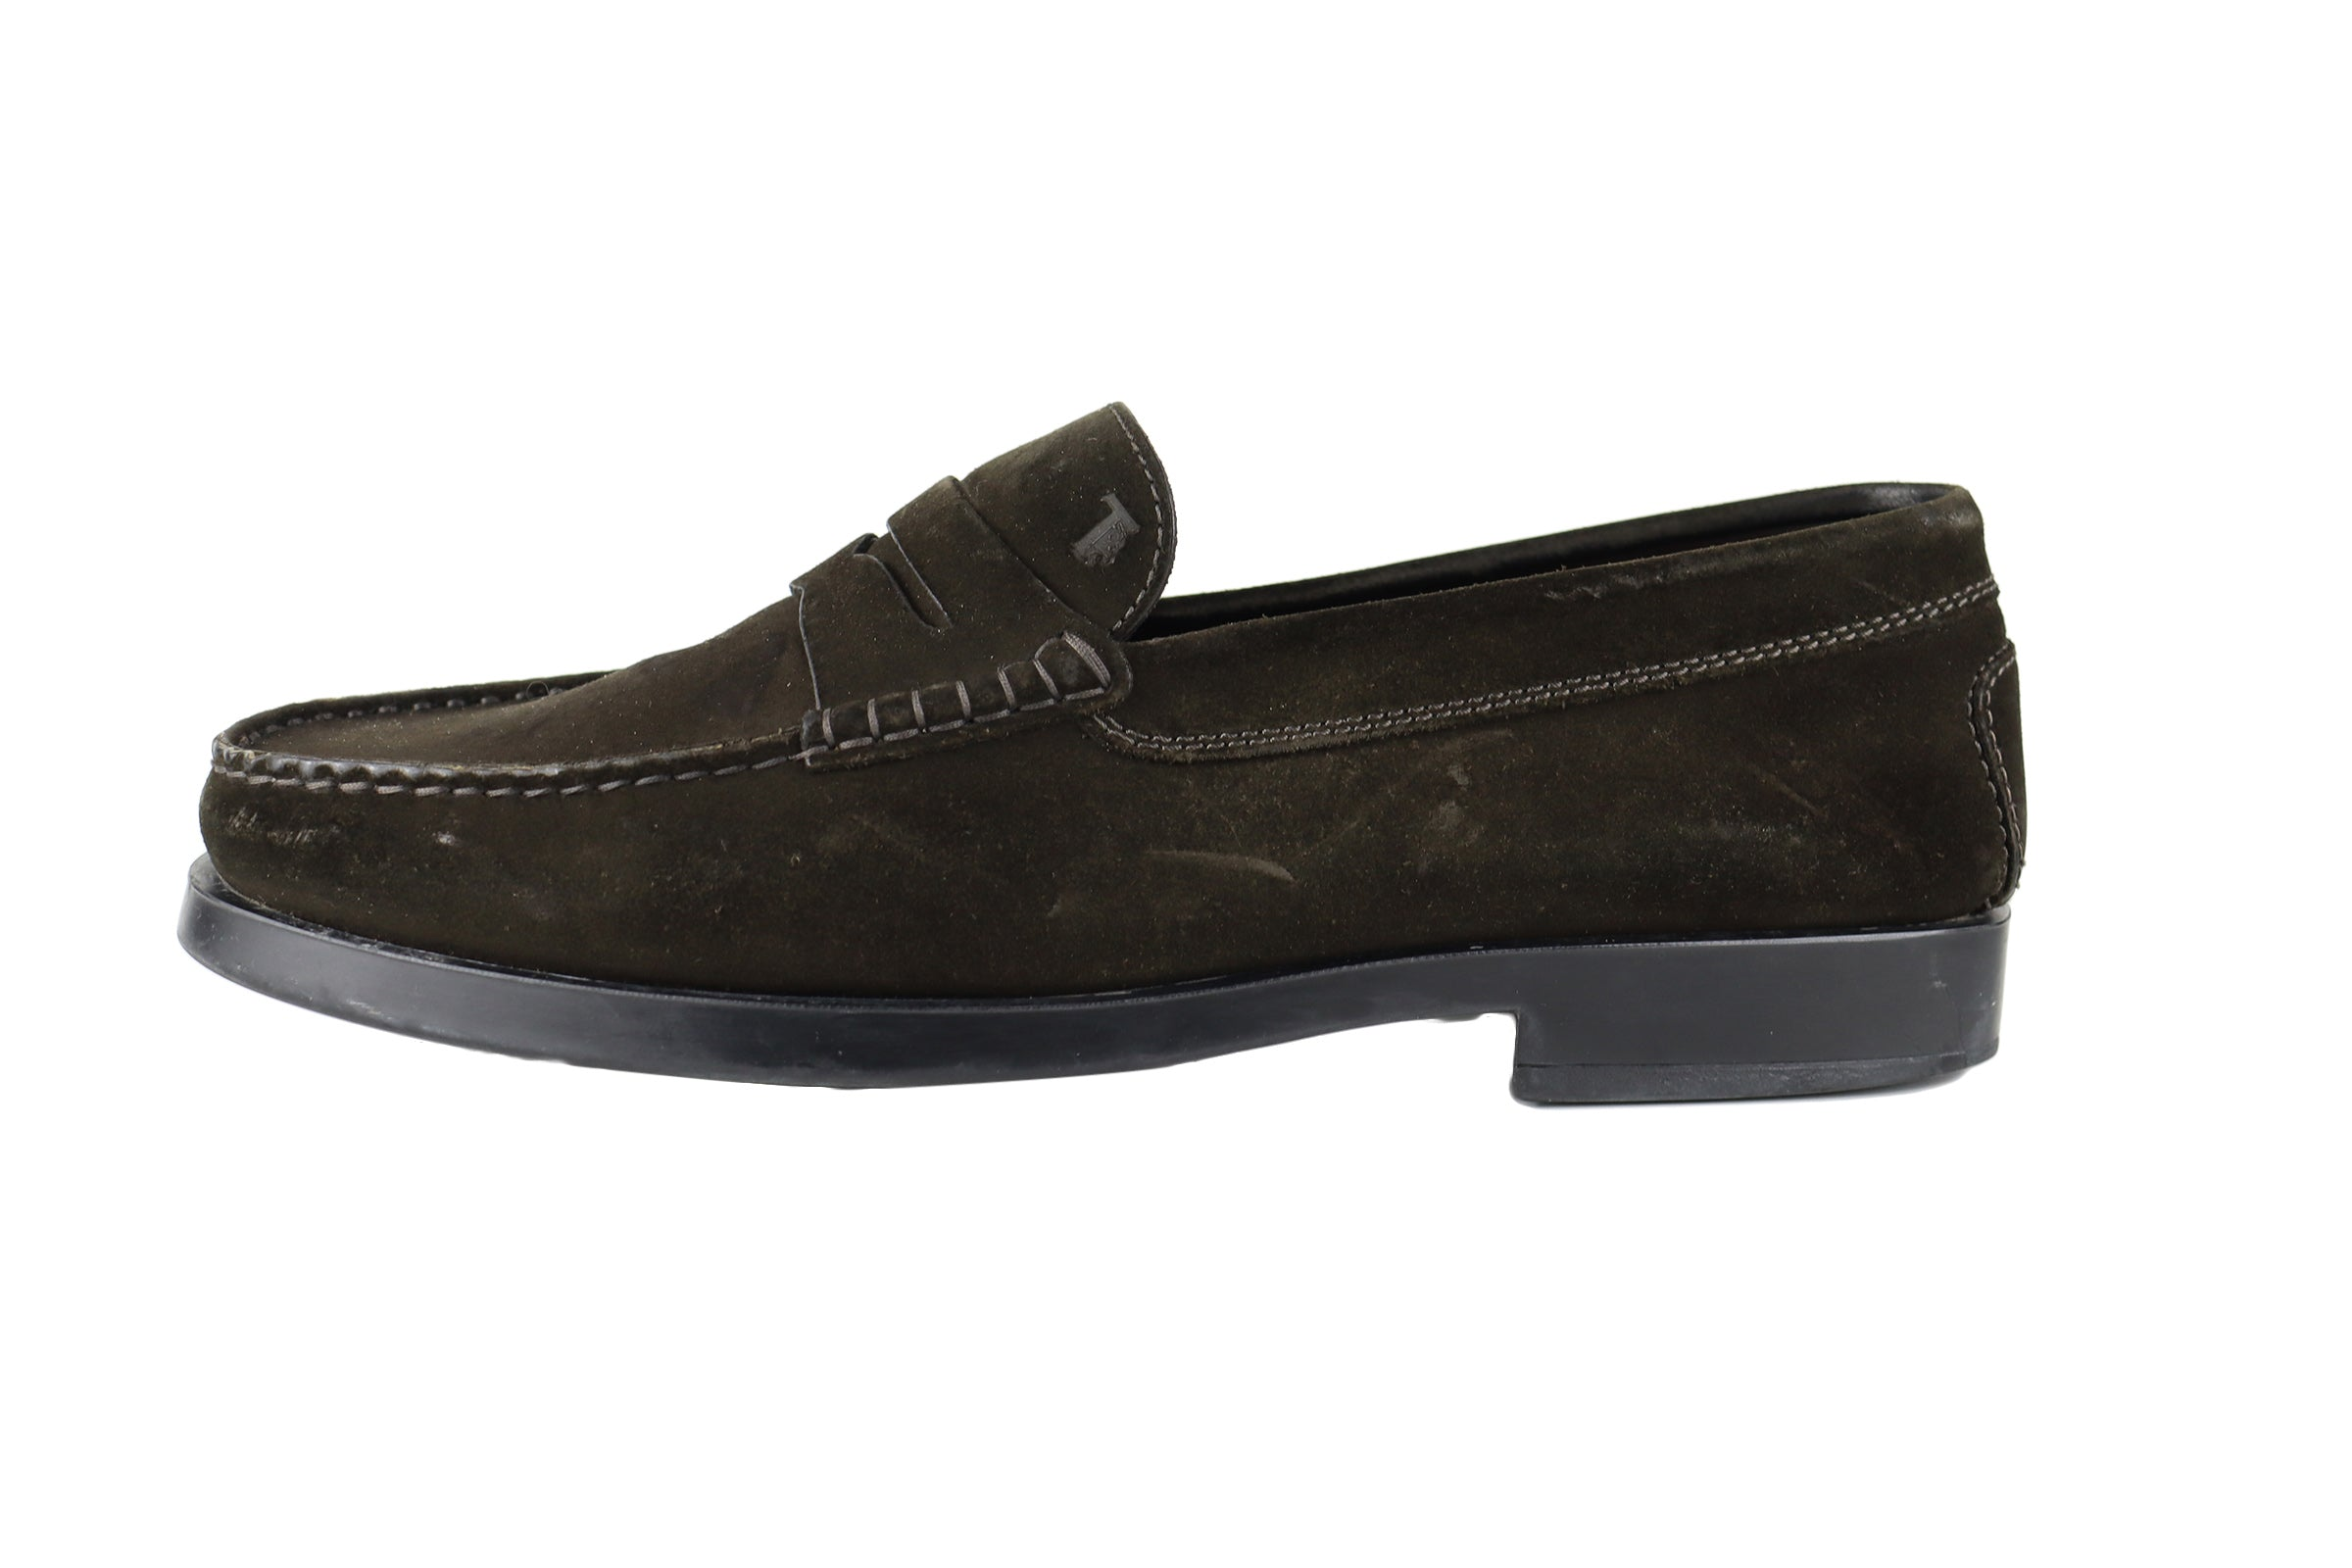 Tod's Green Suede Mocassins Men Size 44,5 (EU)